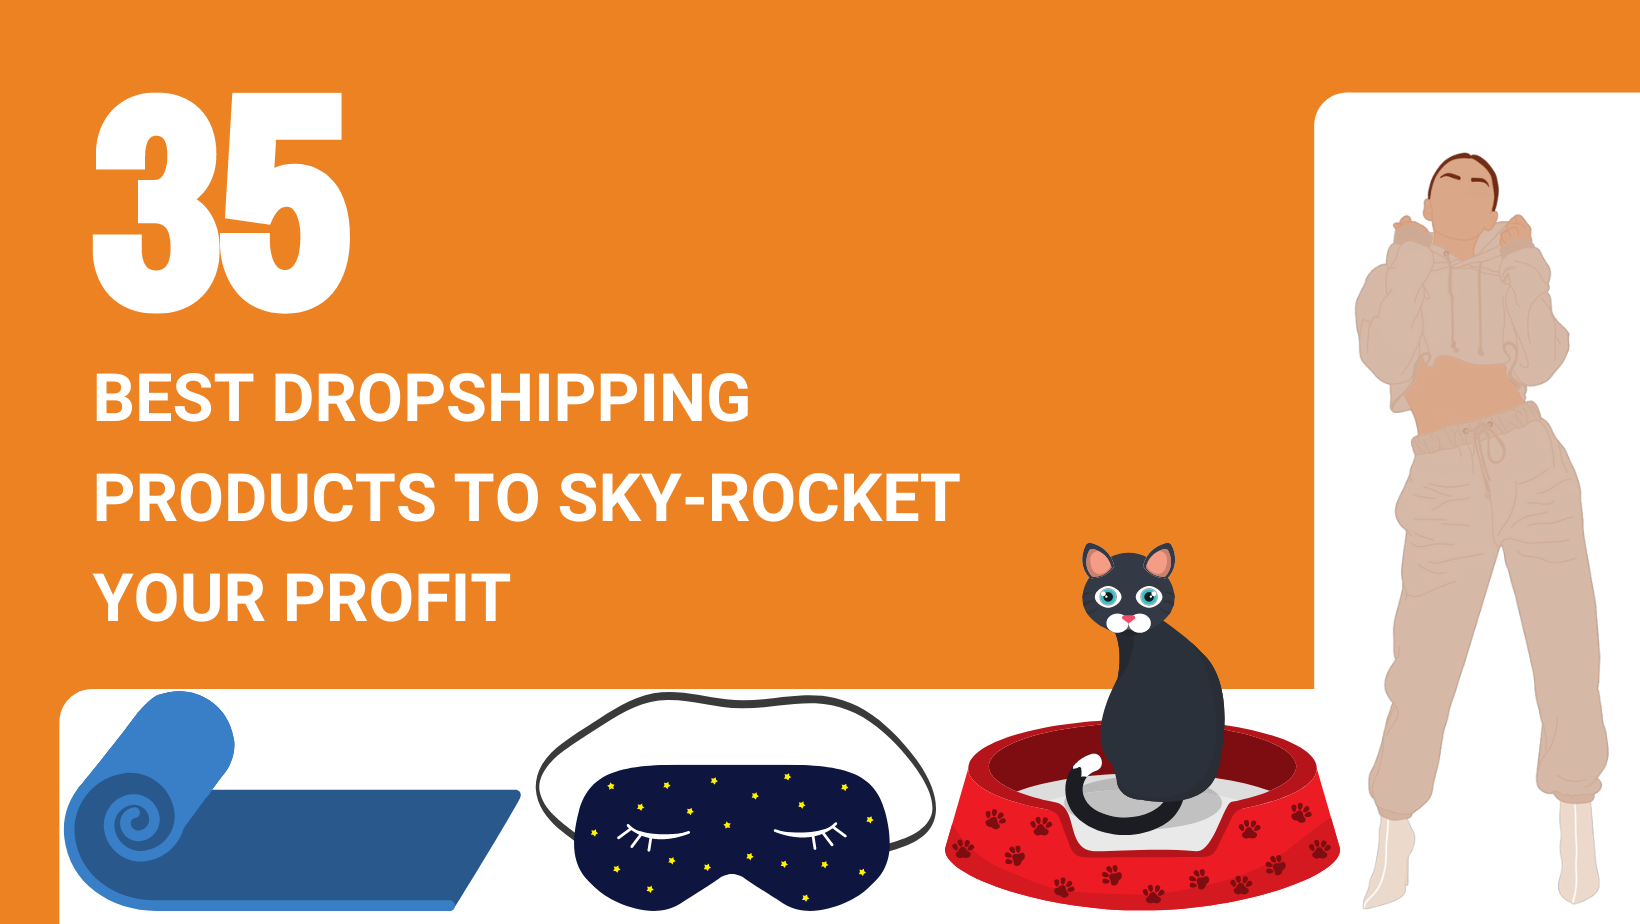 35 BEST DROPSHIPPING PRODUCTS TO SKY ROCKET YOUR PROFIT